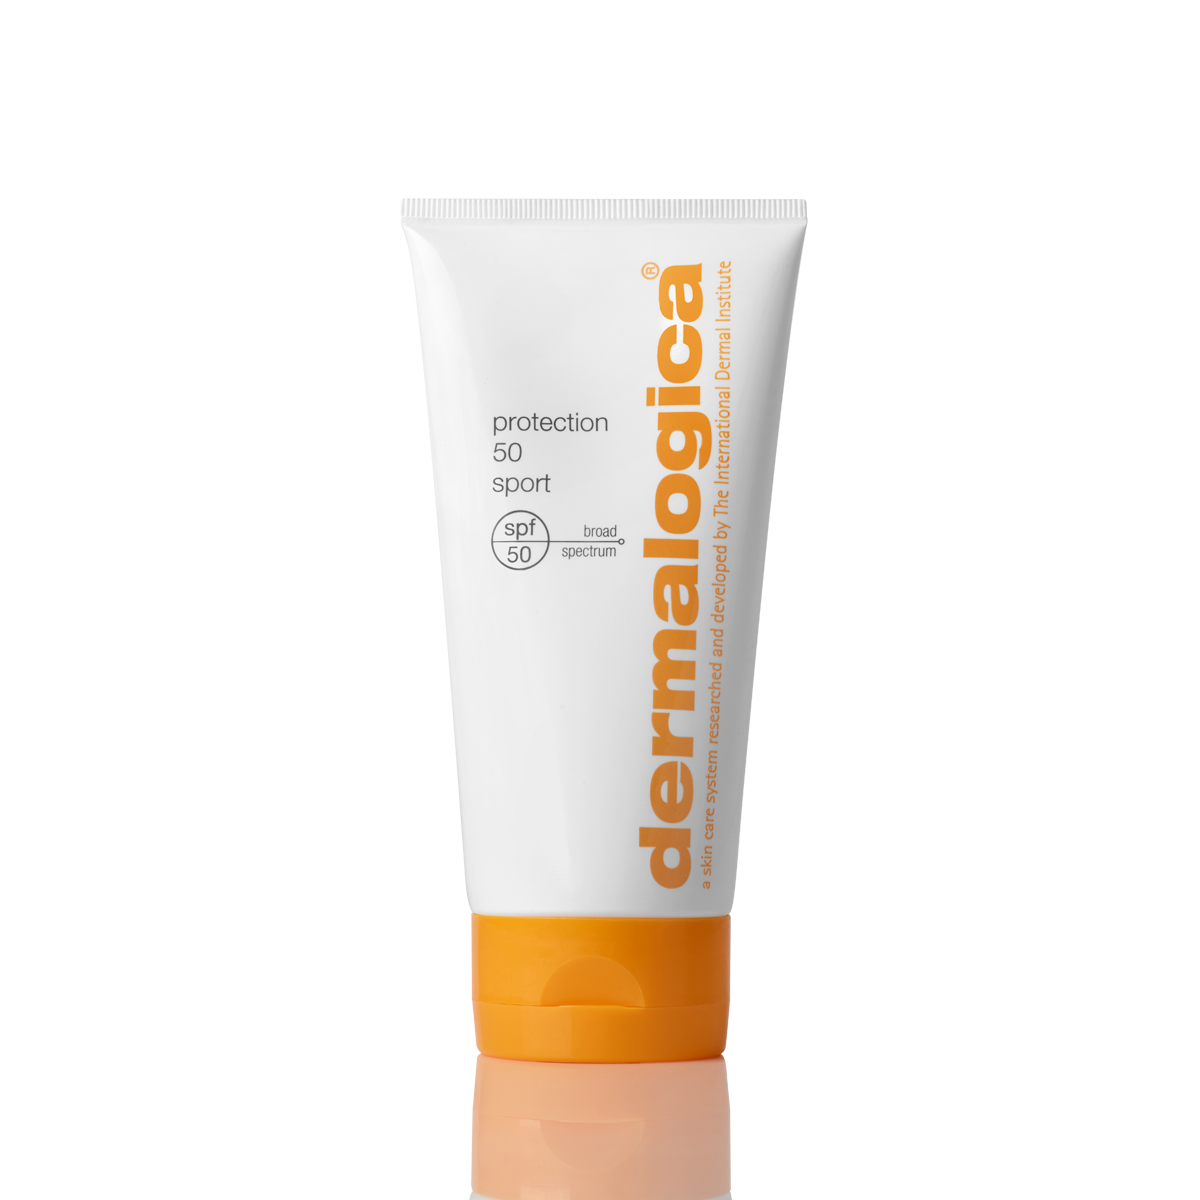 Protection 50 Sport SPF50 - 156ml-1